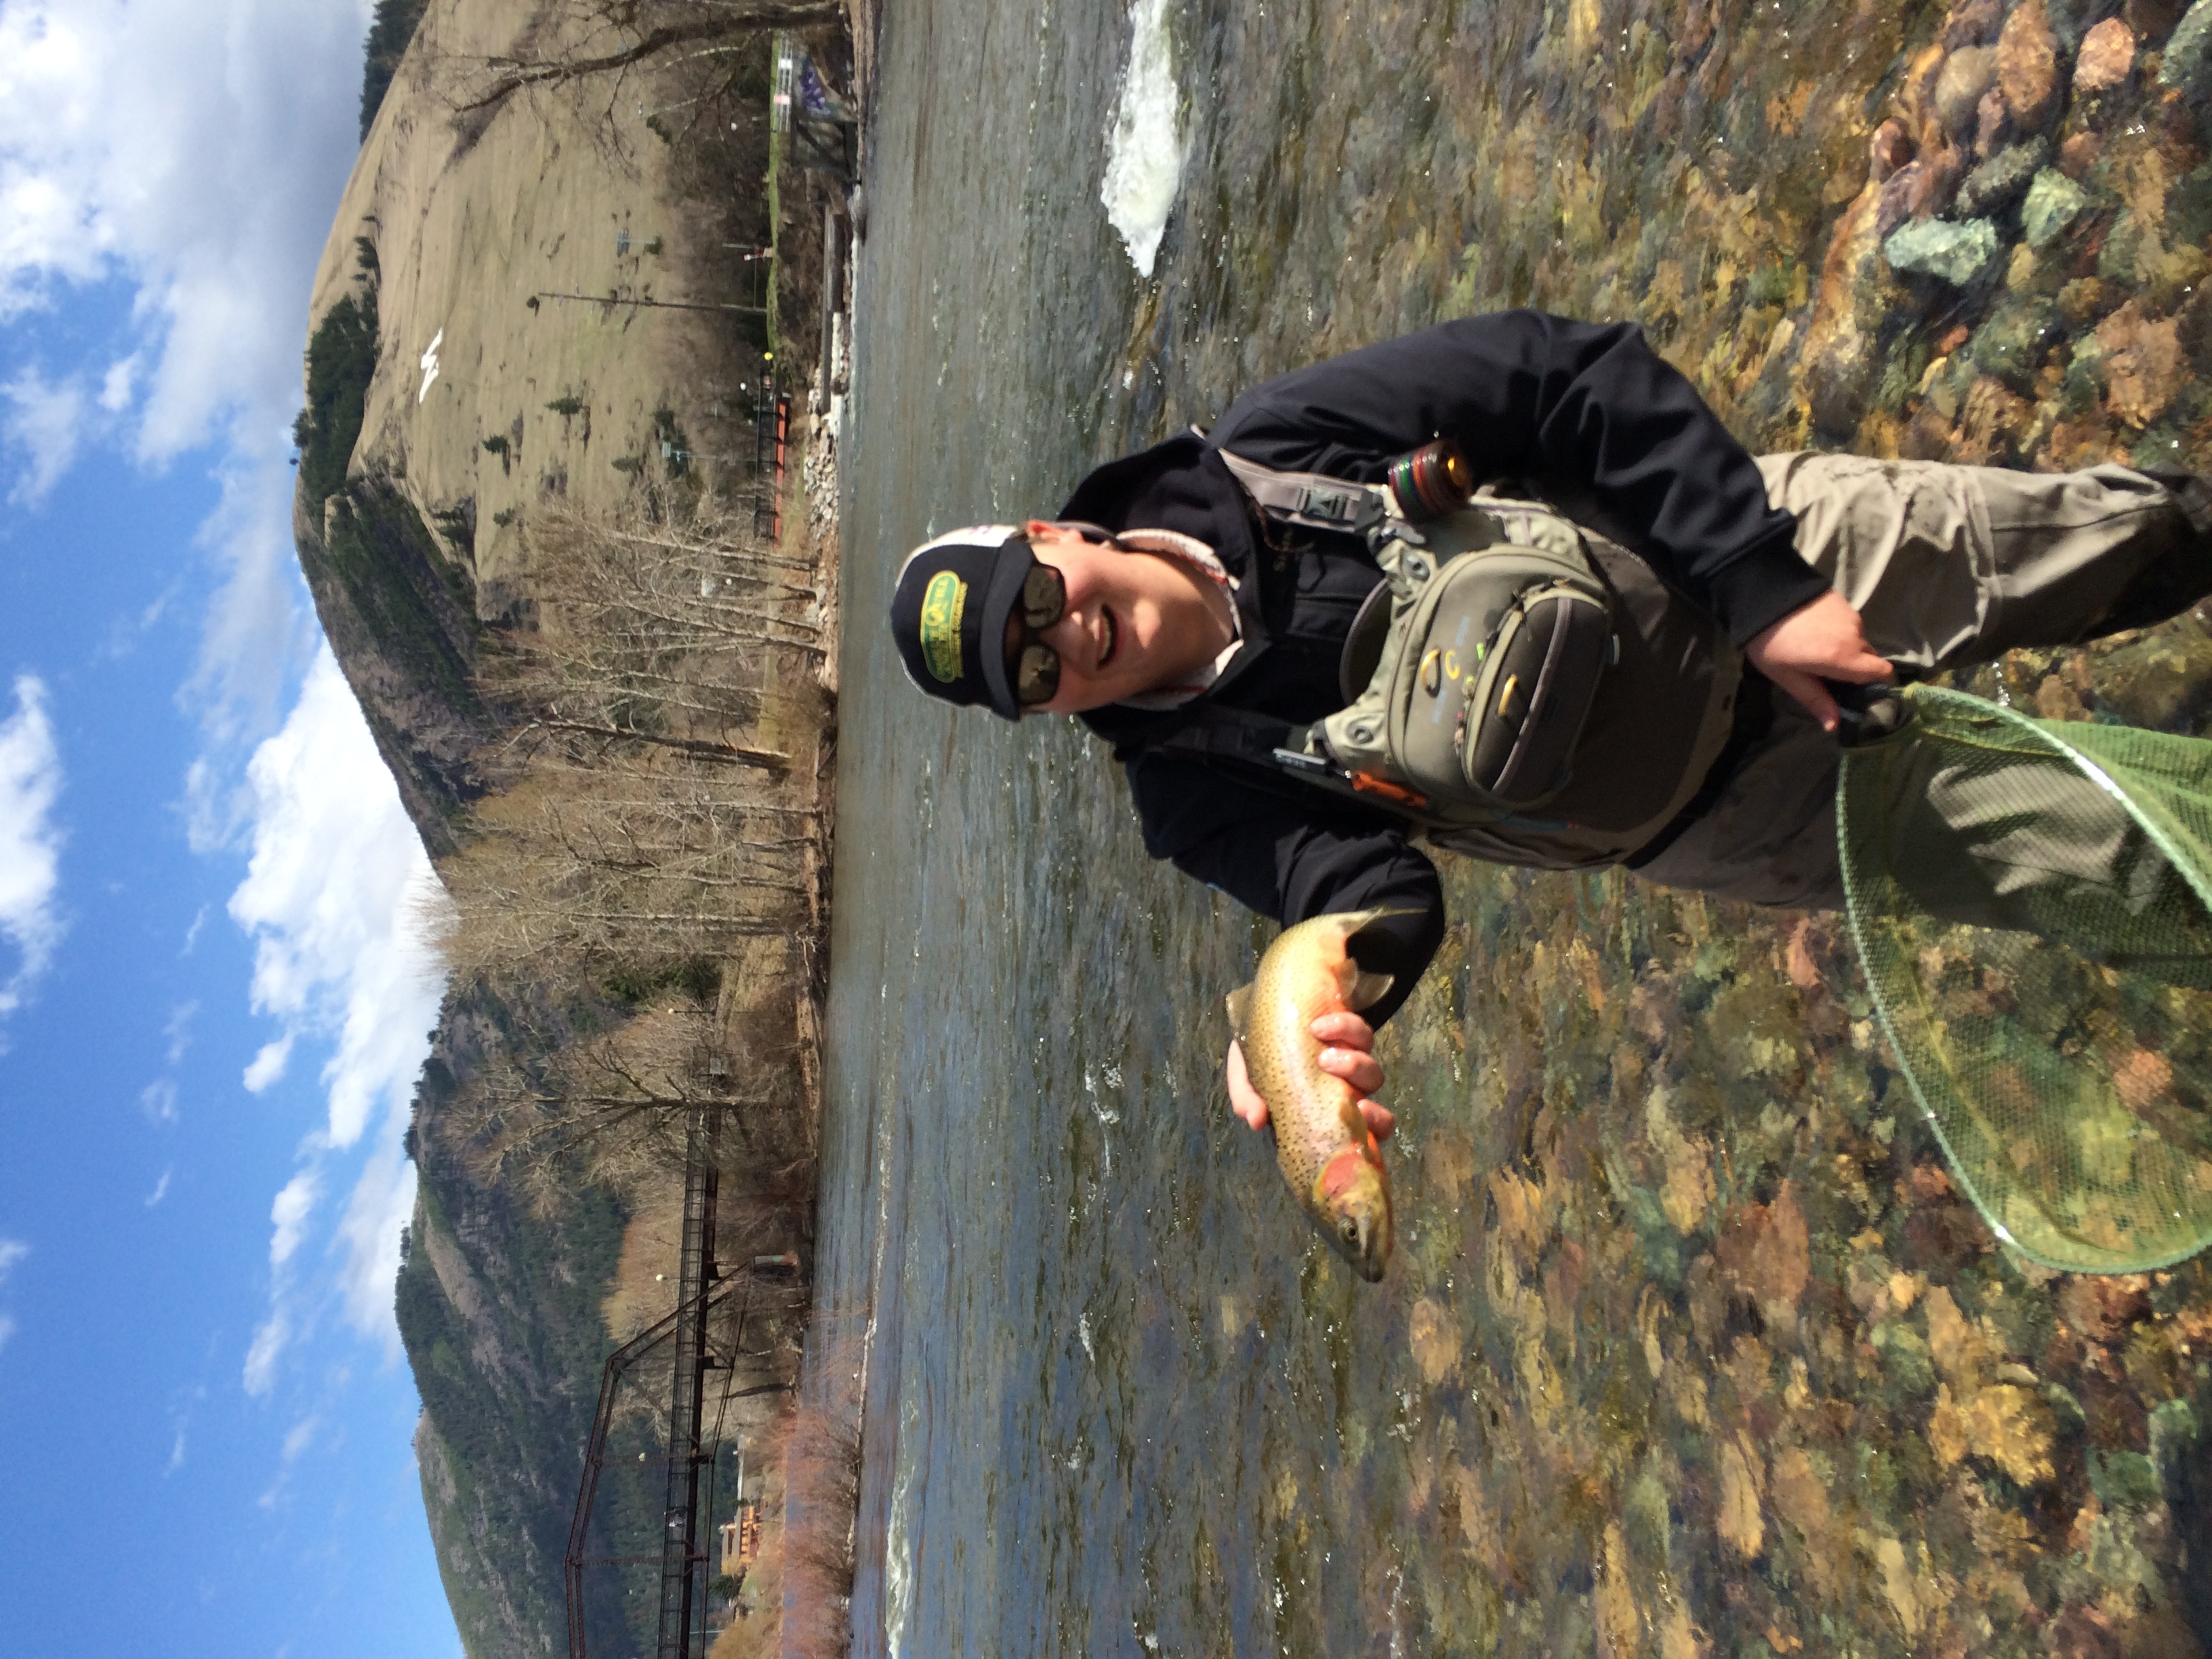 Alex on his Hacklebarney sponsored trip to the youth conference in Wyoming.